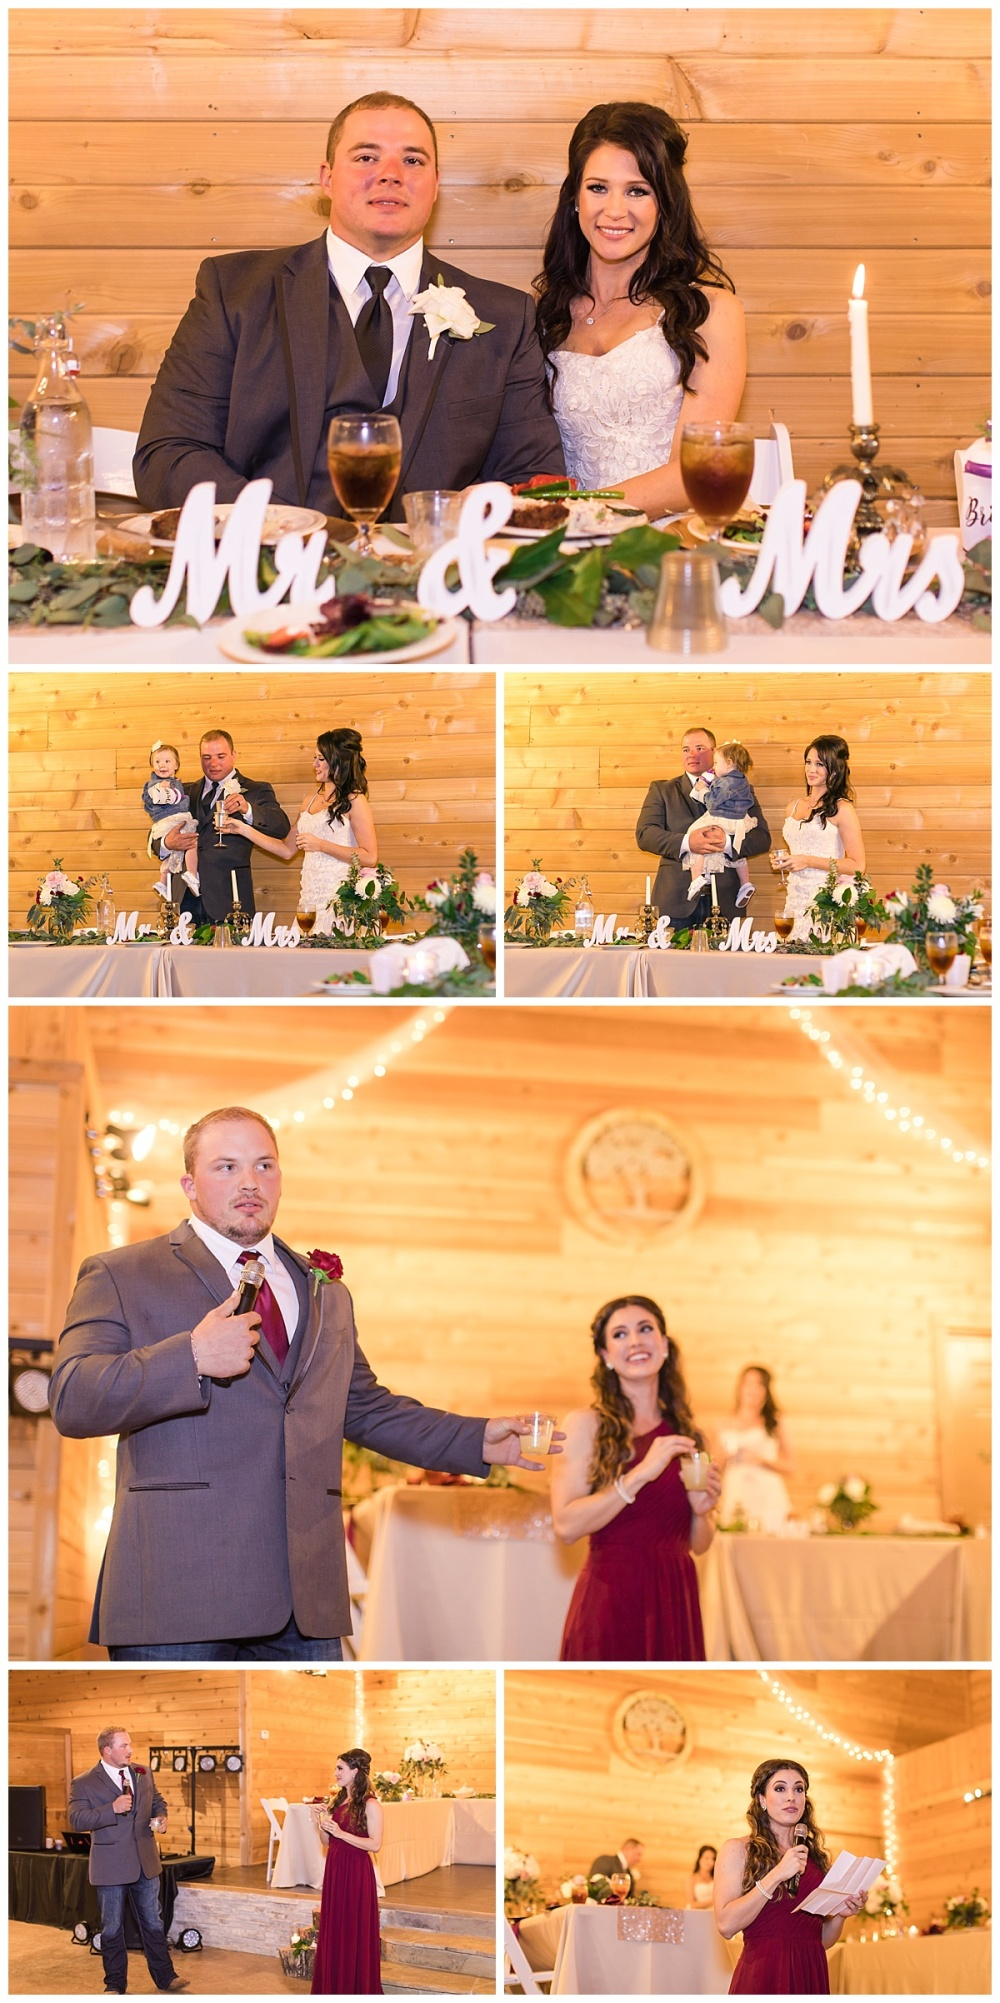 Carly-Barton-Photography-Geronimo-Oaks-Wedding-Venue-Texas-Hill-Country-Ronnie-Sarah_0130.jpg